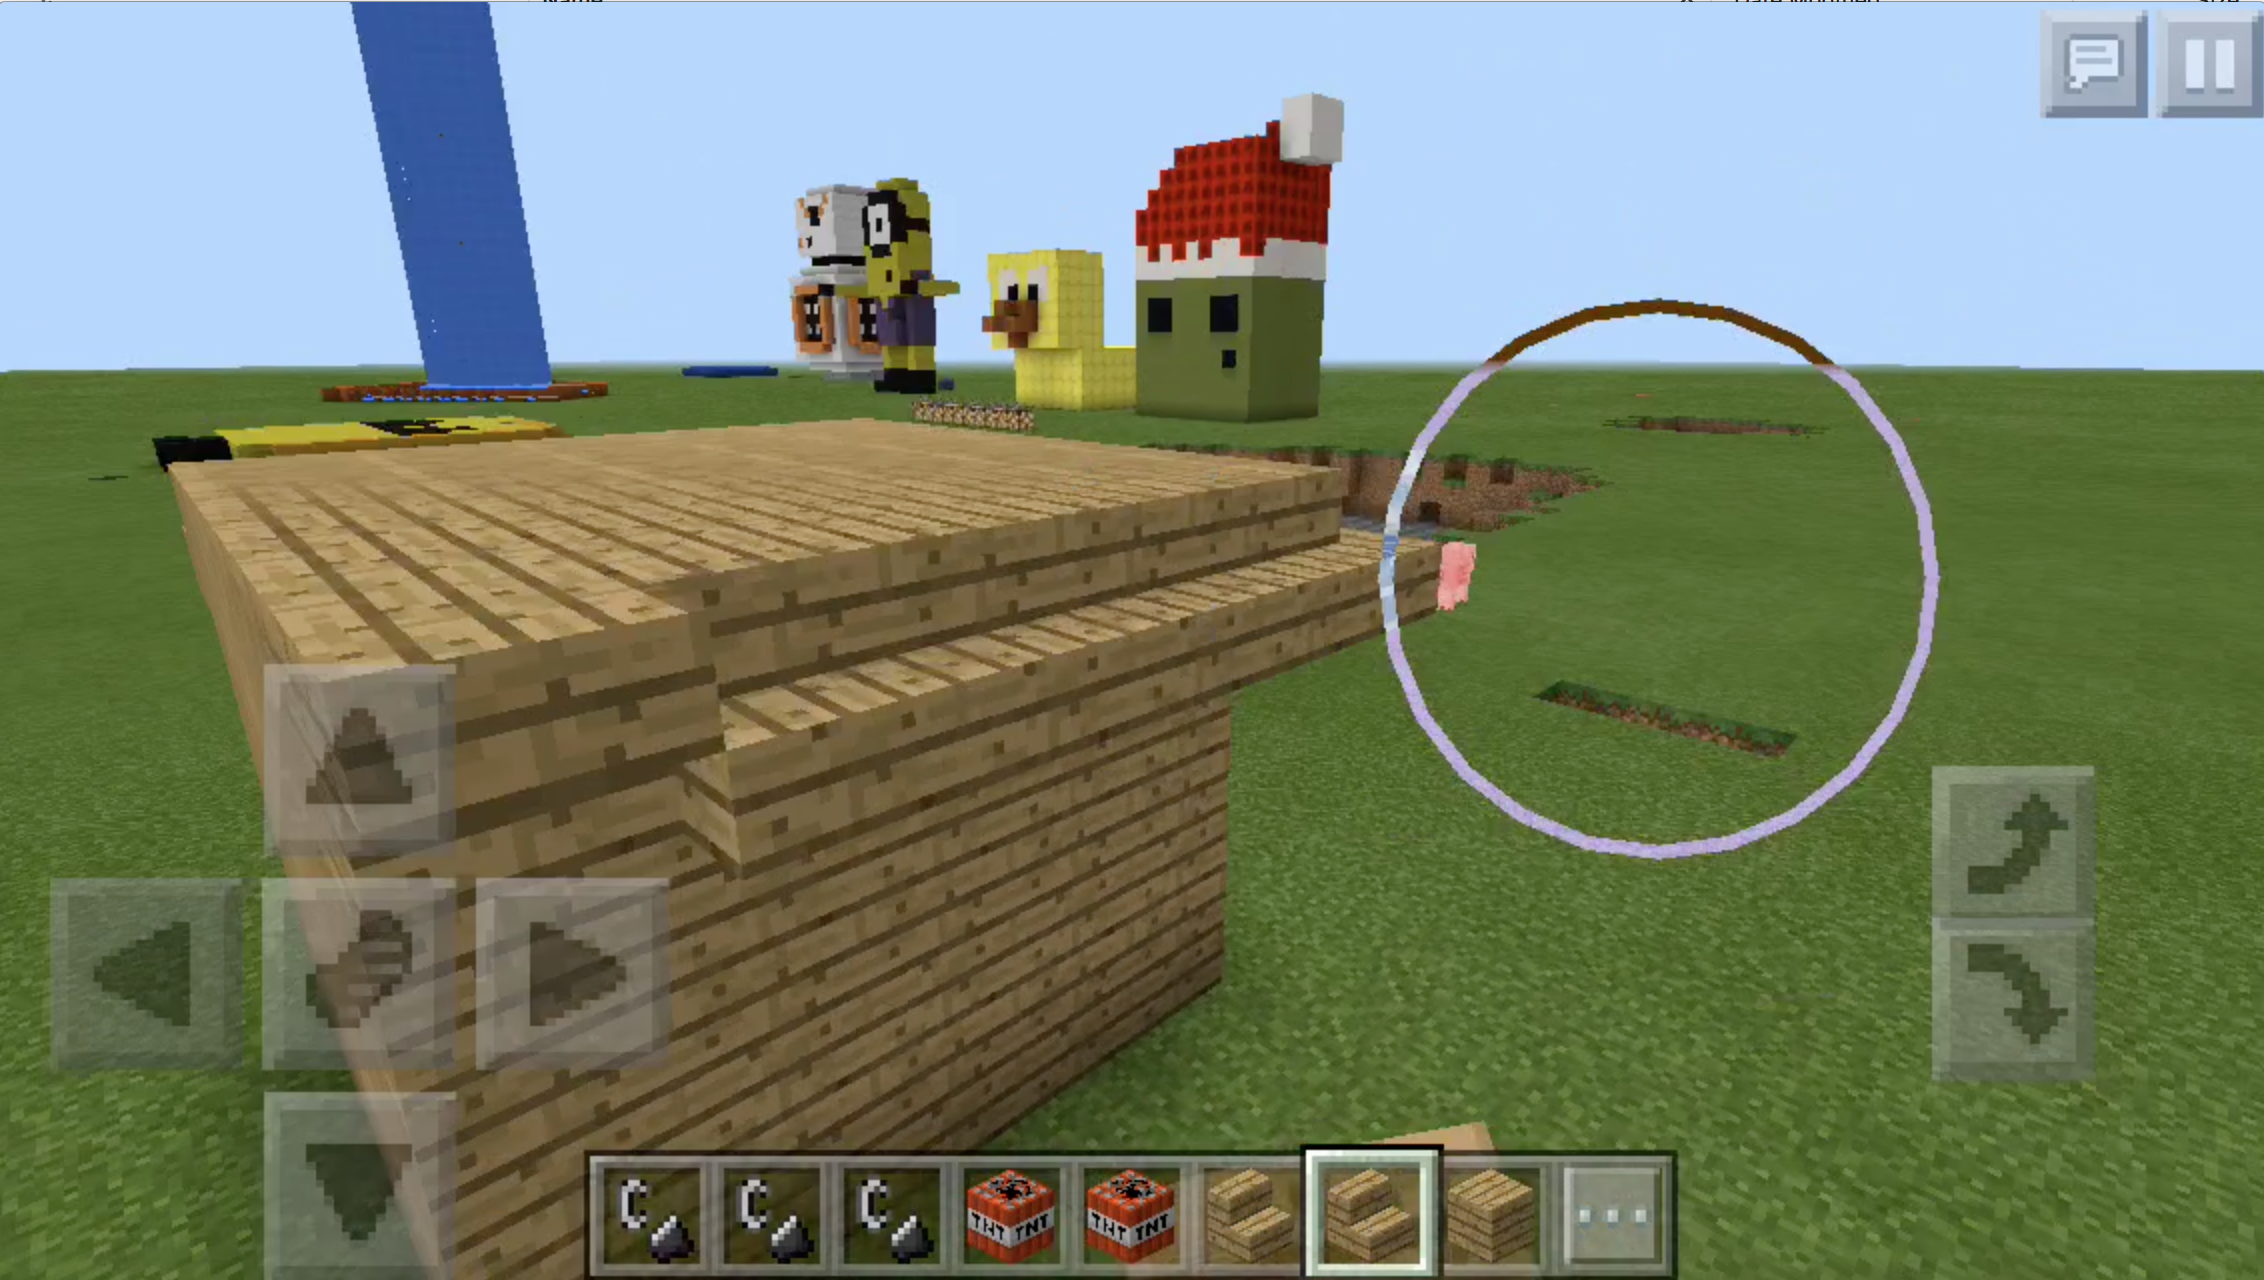 In Minecraft, kids can create characters and build worlds with friends